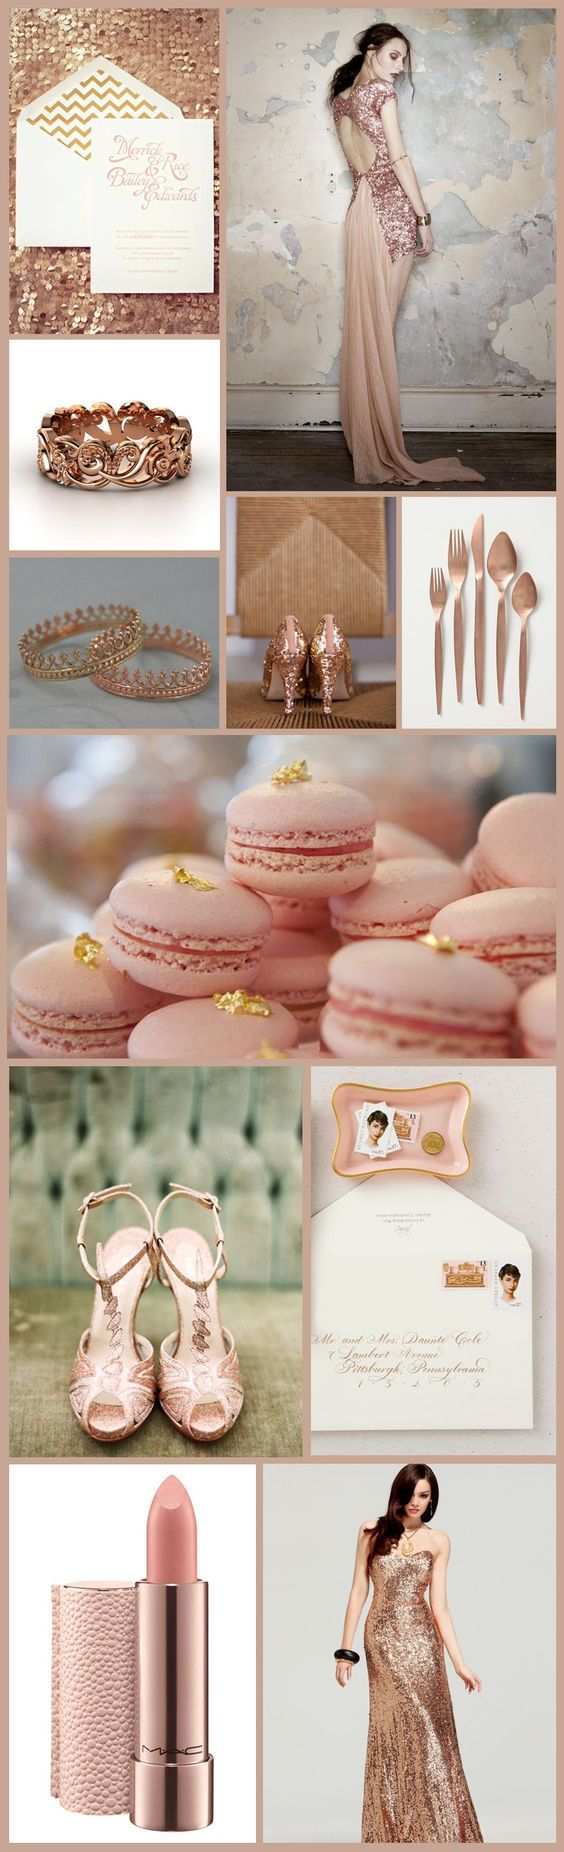 Rose Gold Wedding Inspiration Board #PinkWedding #InspirationBoard: